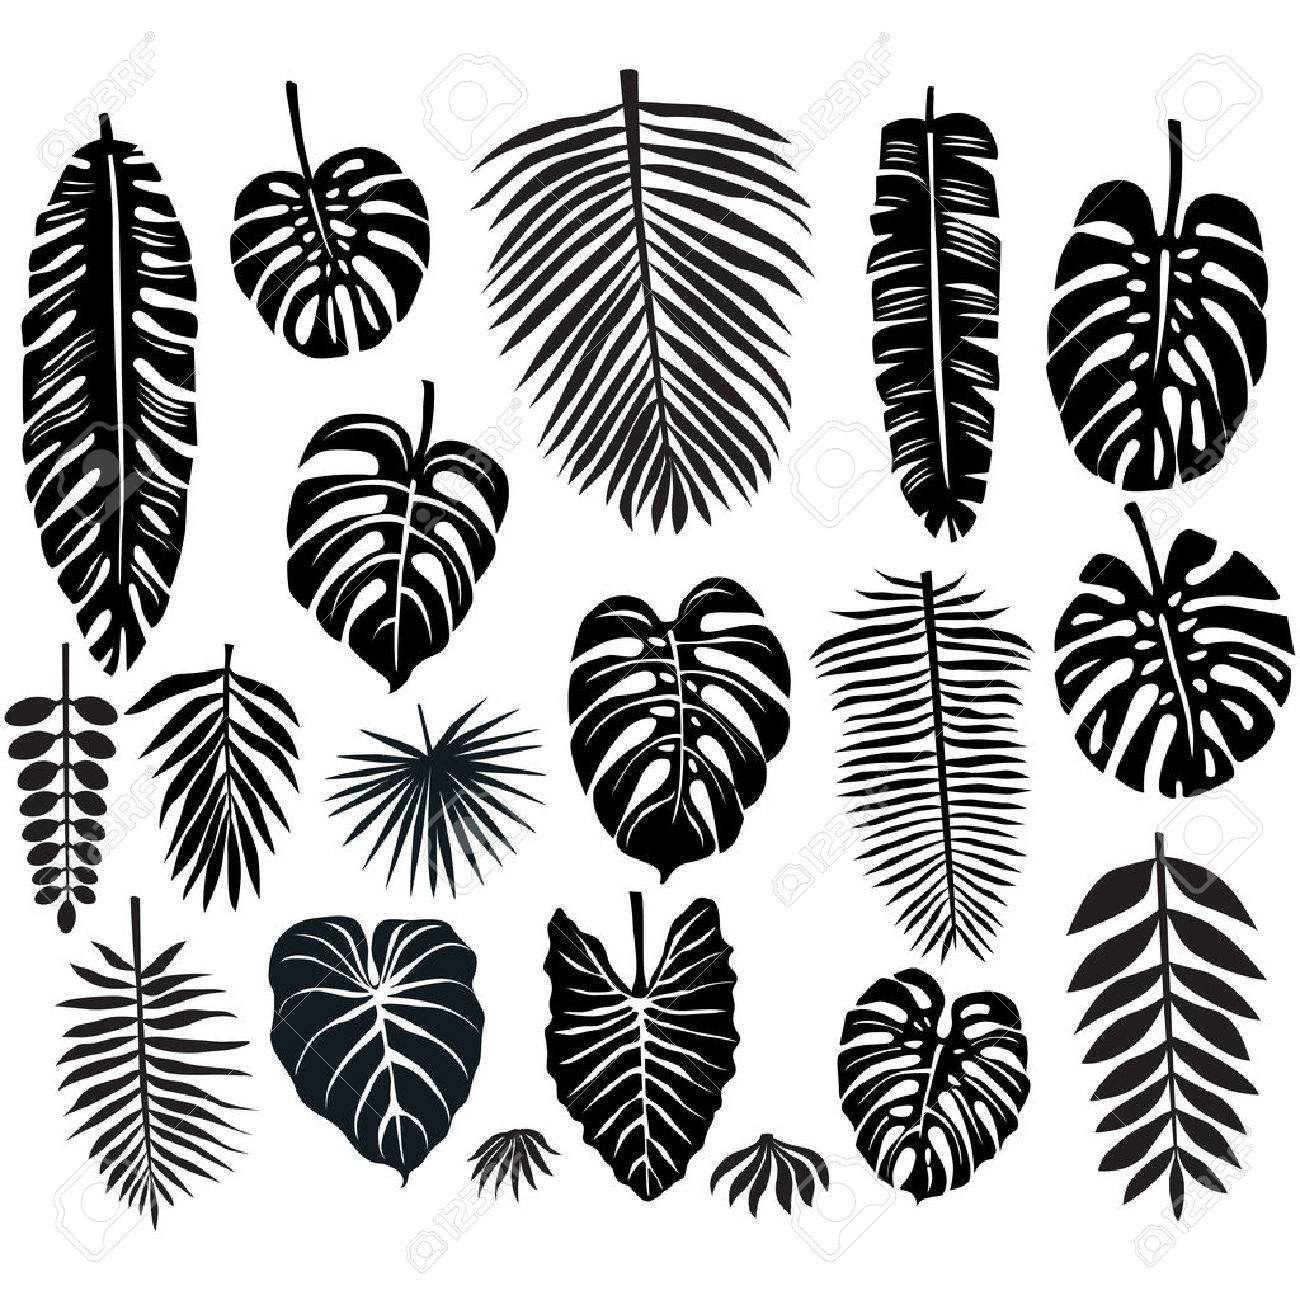 Set Of Tropical Leaves Royalty Free Cliparts Vectors And Stock Illustration Image 59282186 Tropical rainforests are found in a tropical belt around the equator where annual temperature and precipitation are high. set of tropical leaves